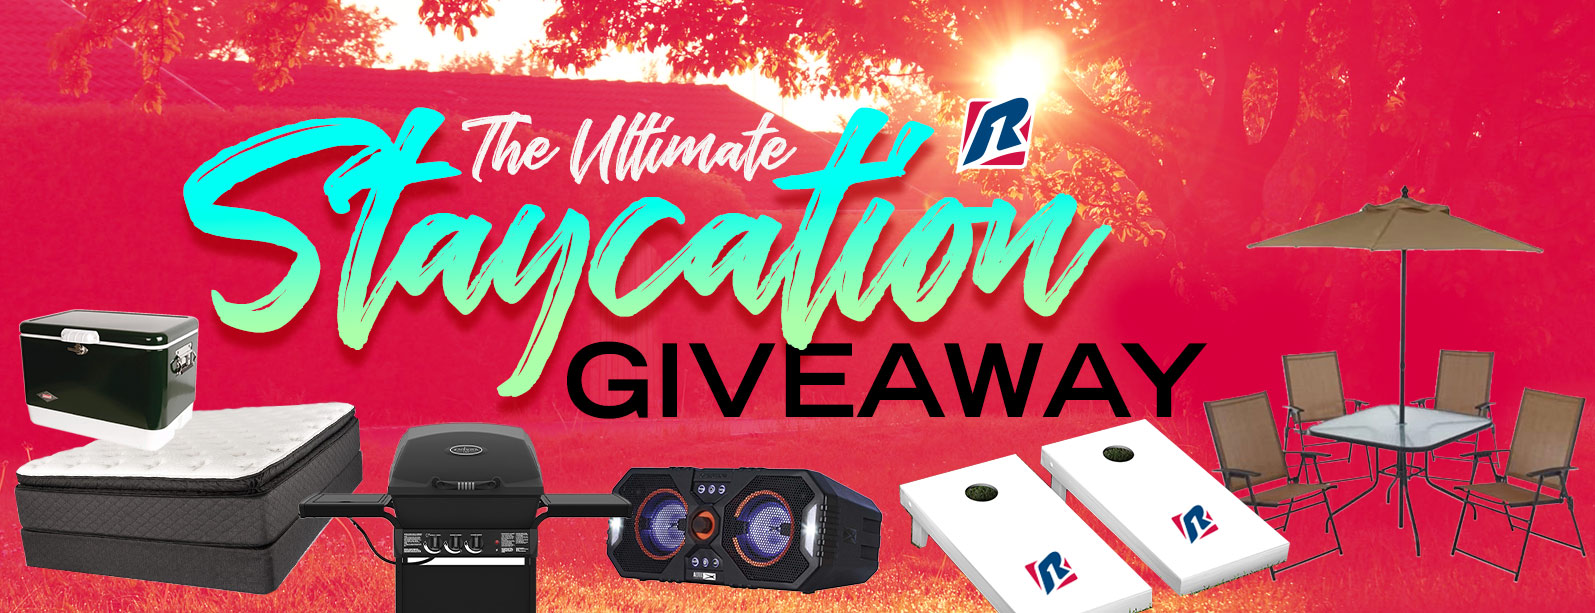 The Ultimate Staycation Giveaway